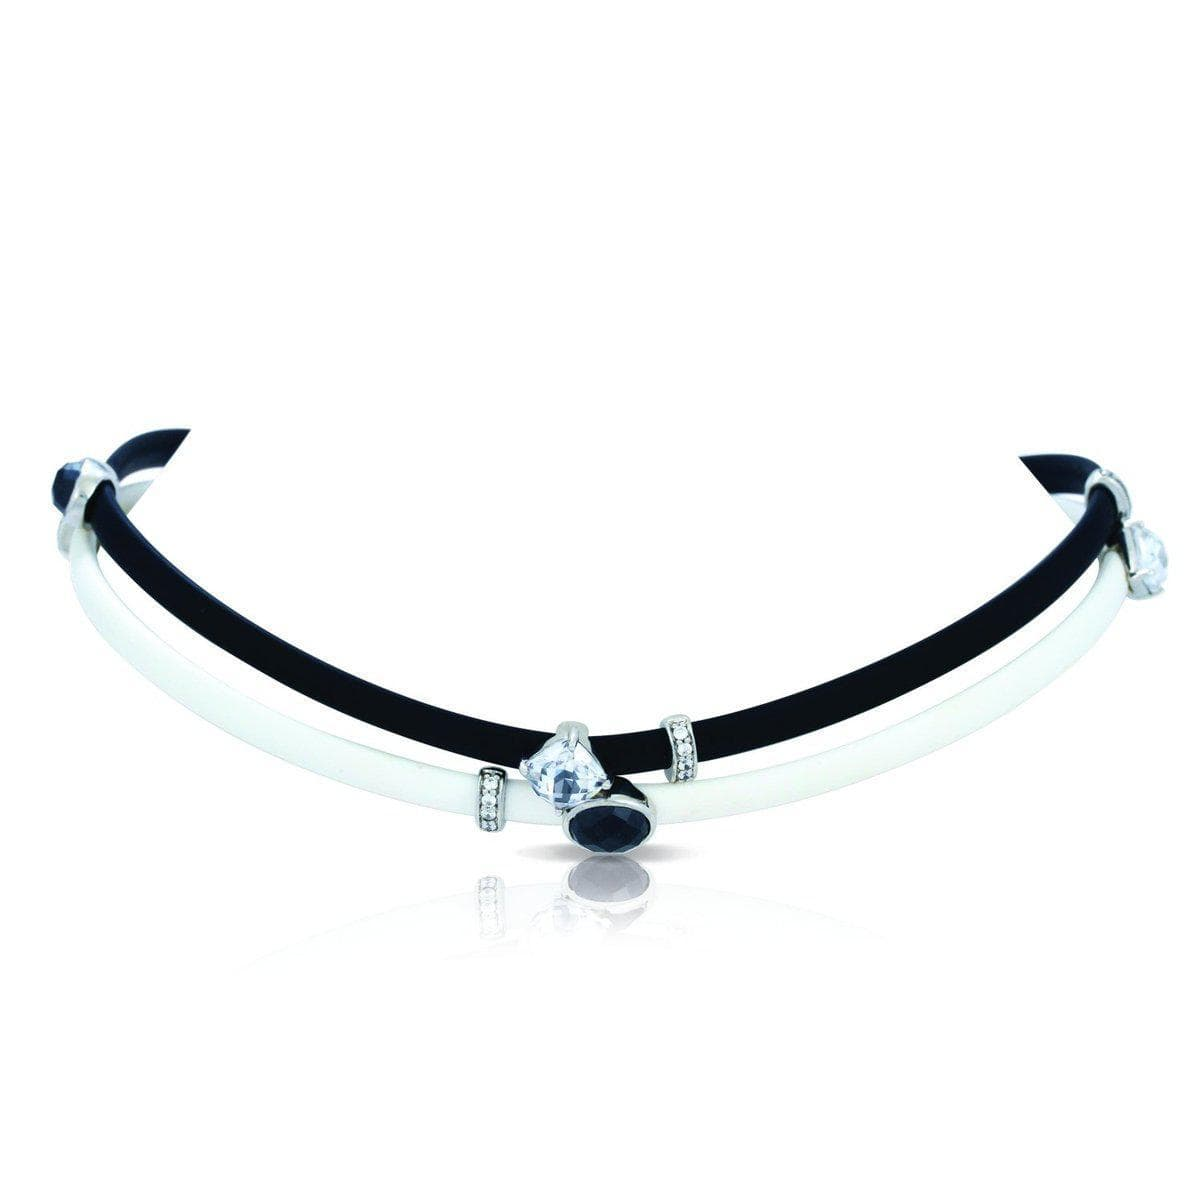 Venezia Black and White Necklace-Belle Etoile-Renee Taylor Gallery